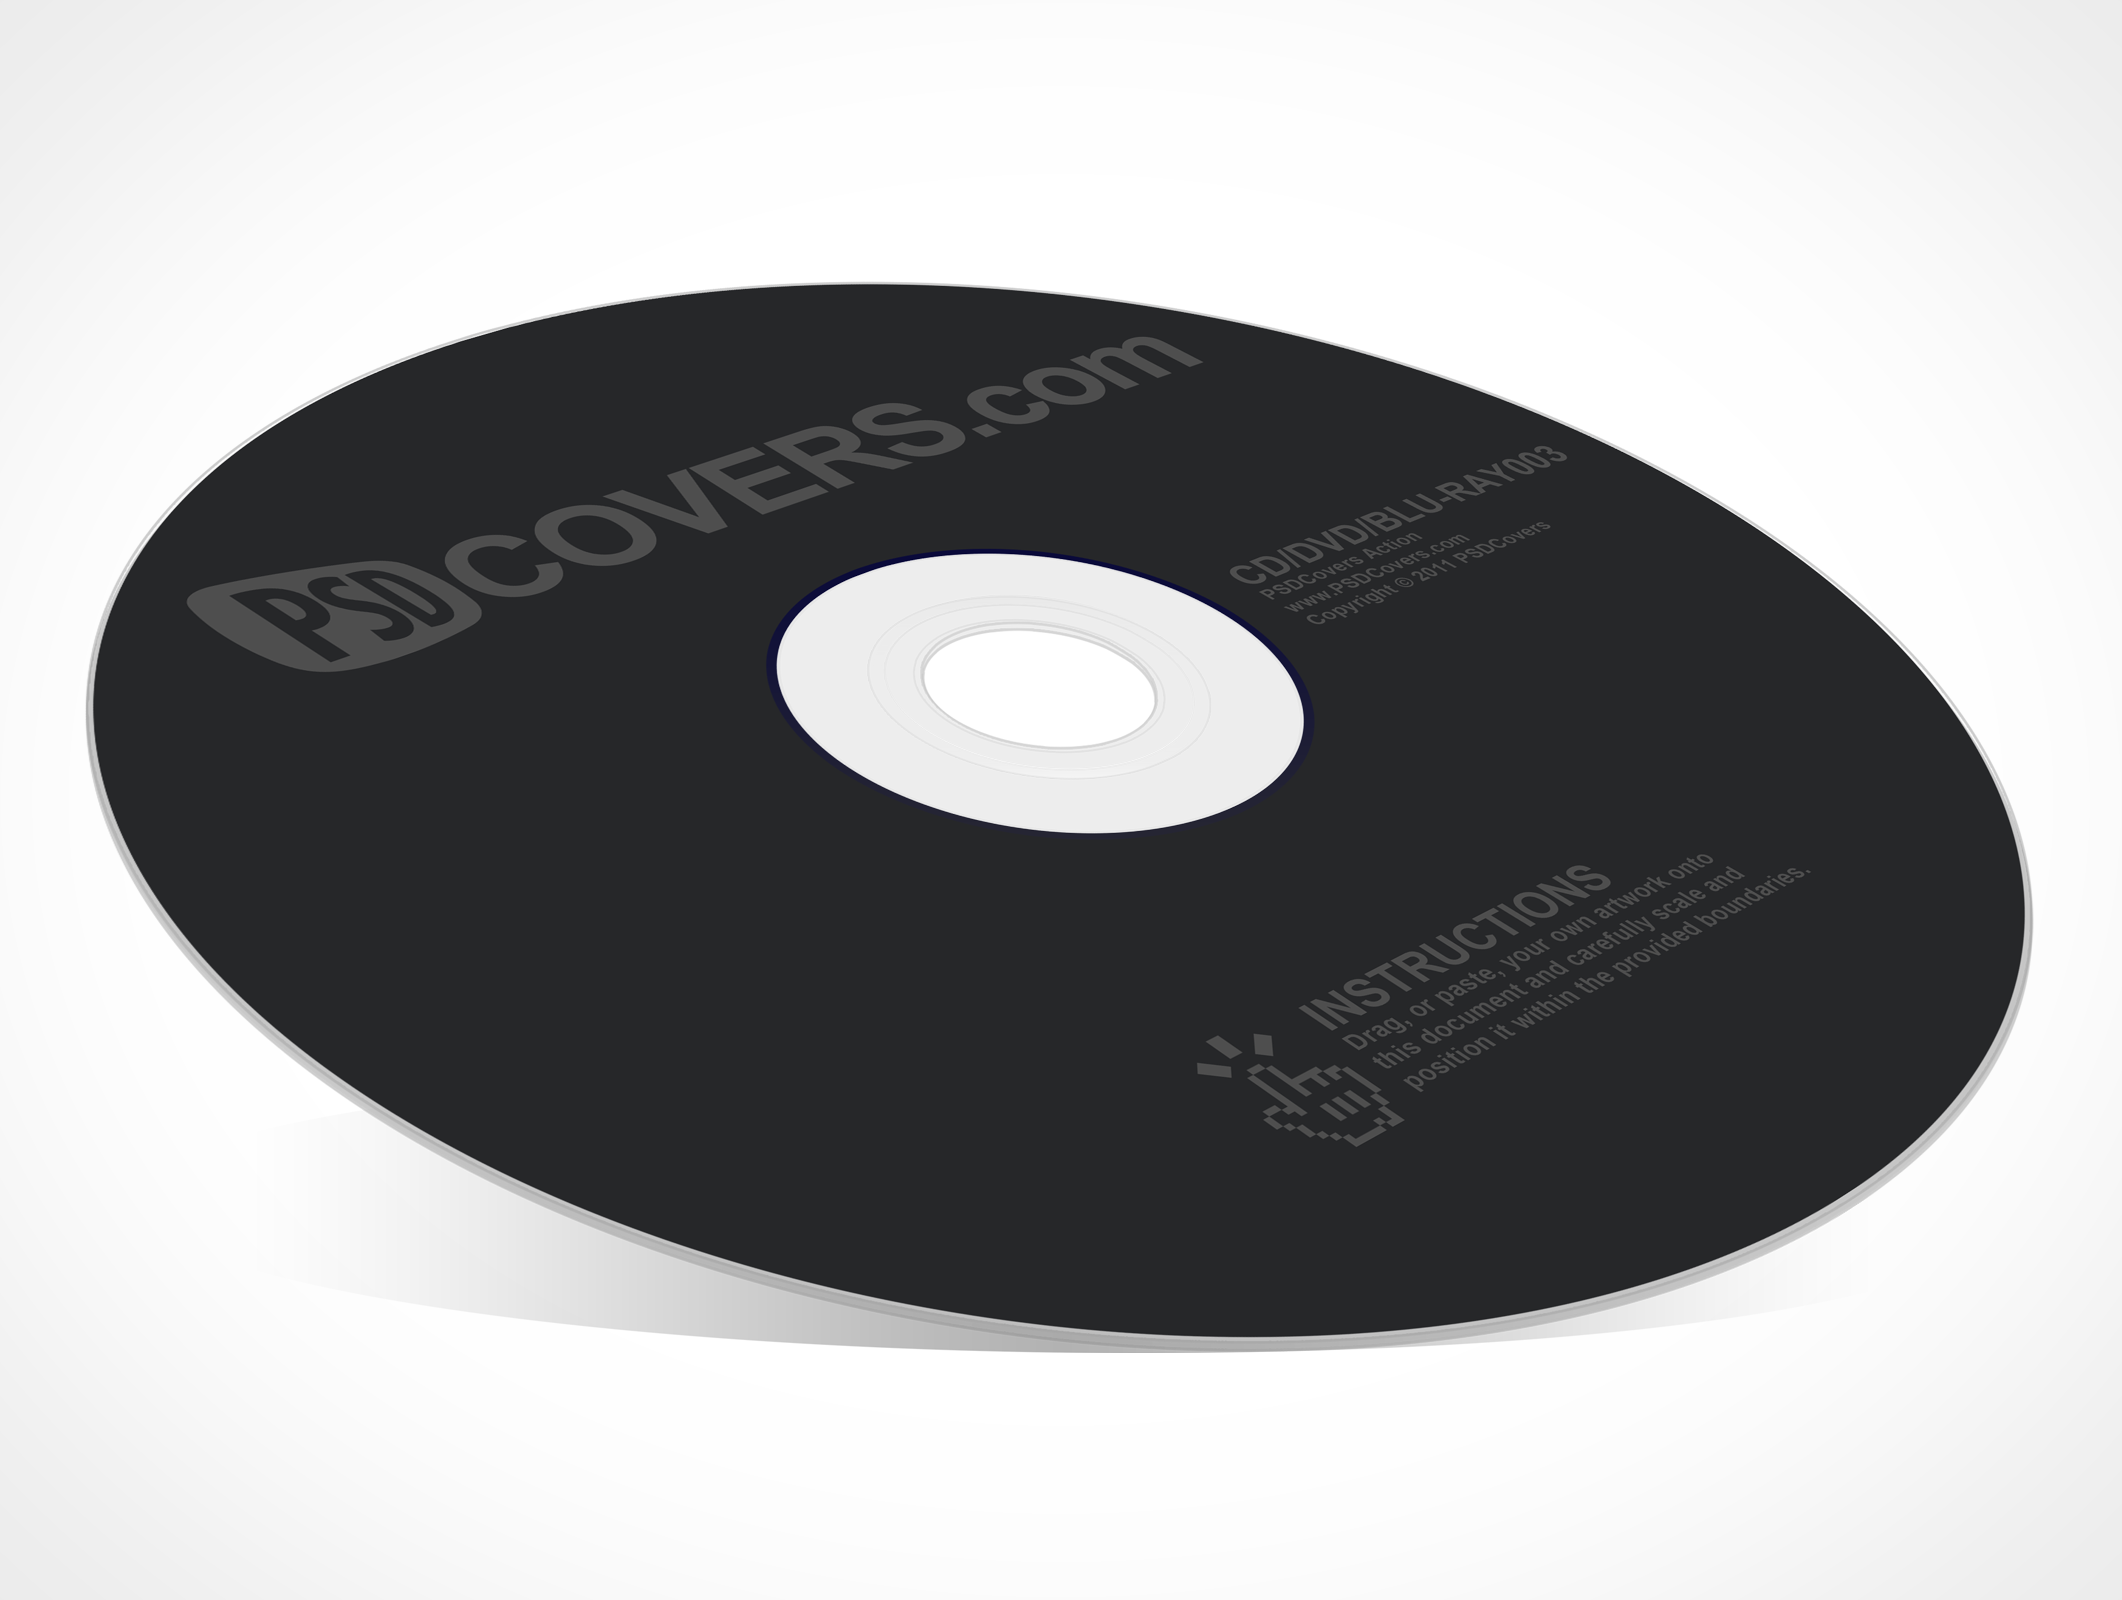 Excellent Cd Layout Template Psd Photos - Examples Professional ...